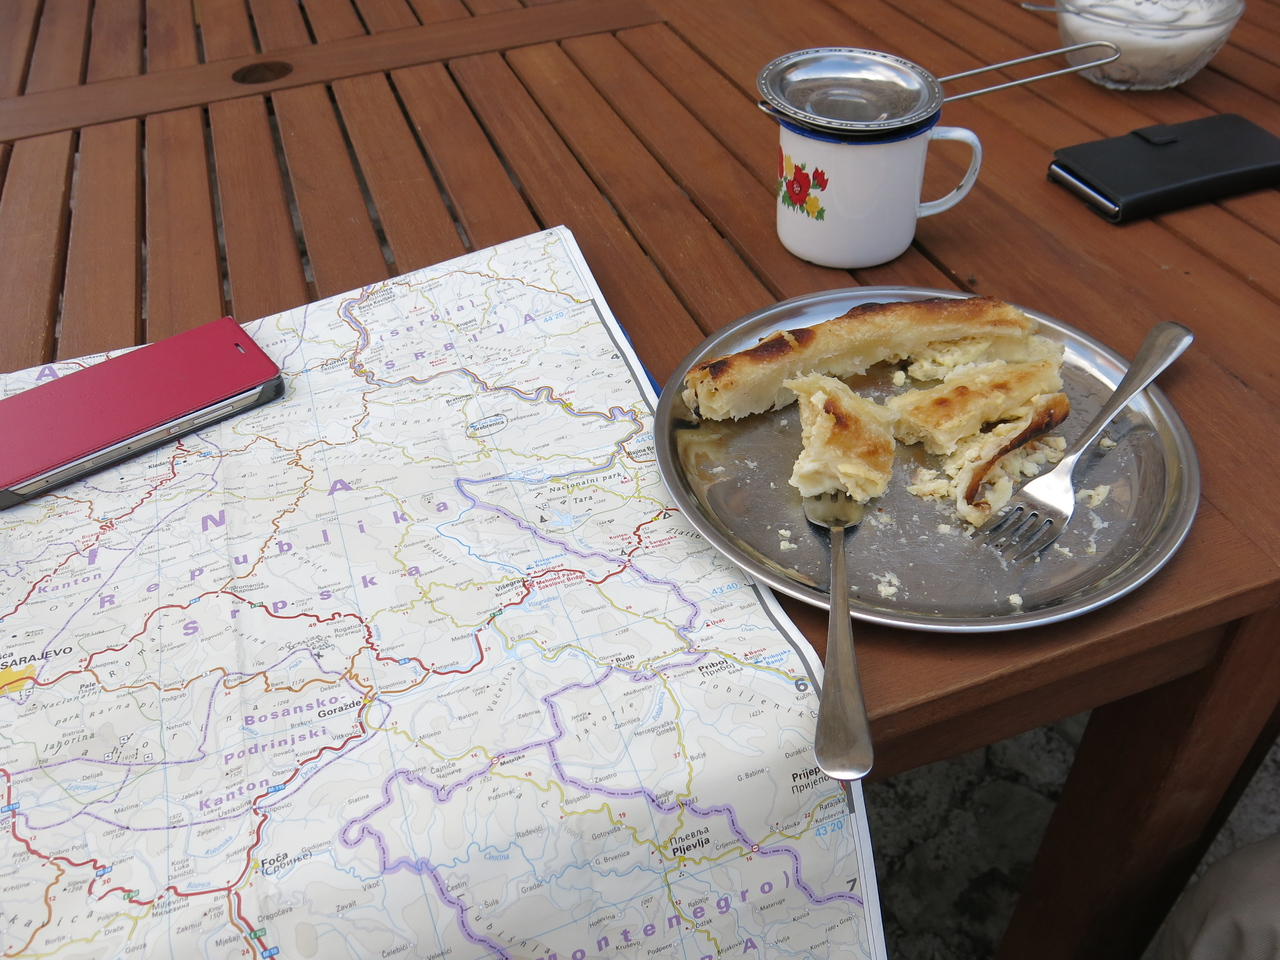 Having a snack while planning a route